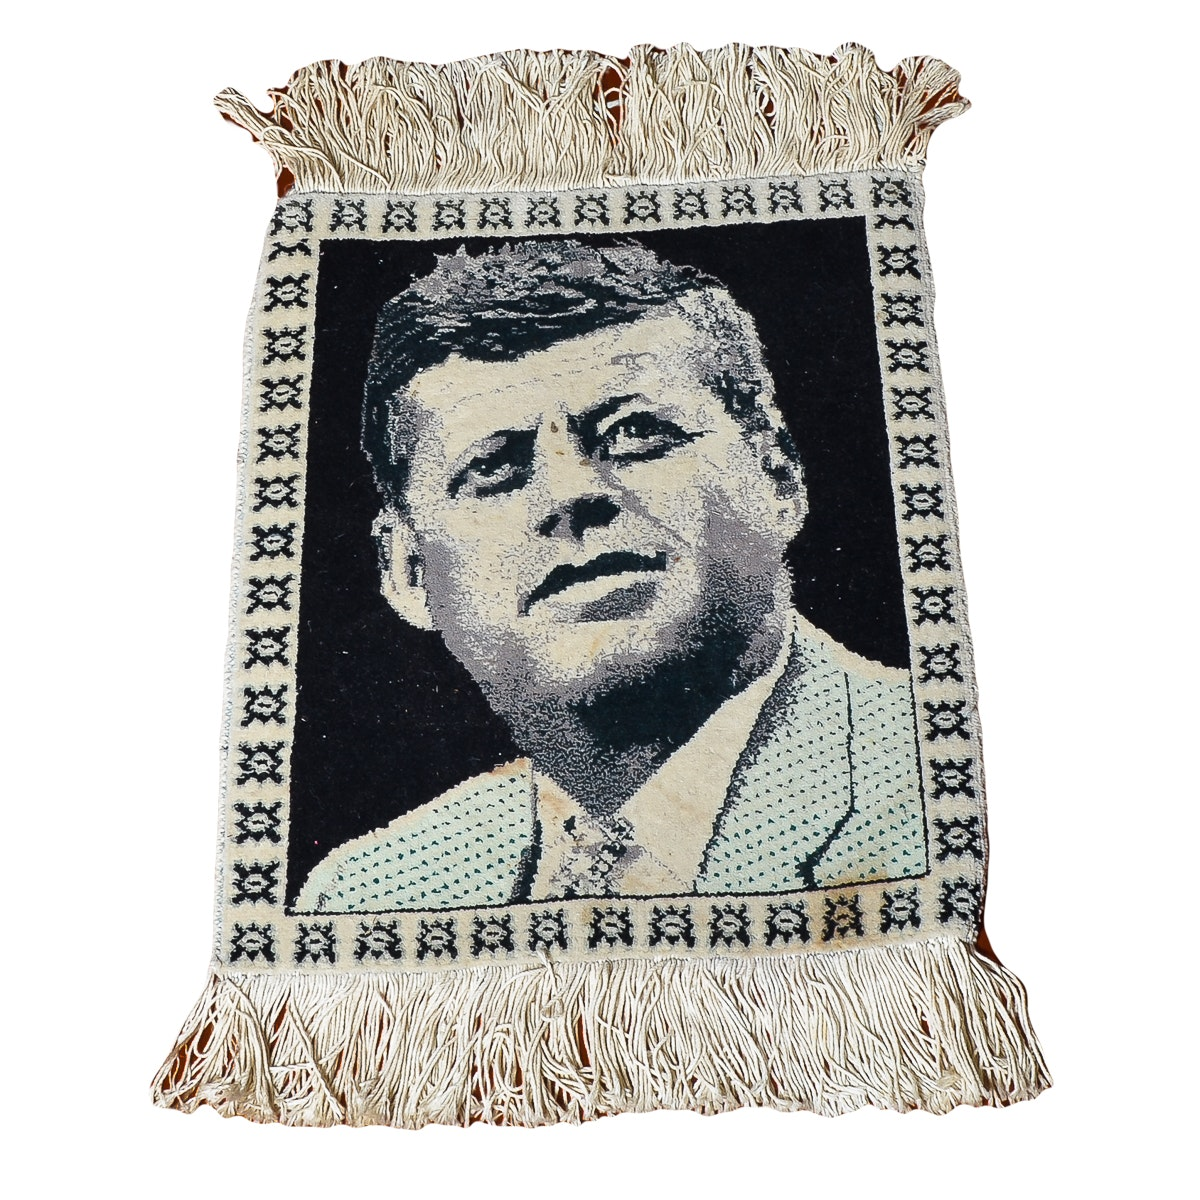 Hand-Knotted Tabriz Persian Wool Accent Rug featuring JFK